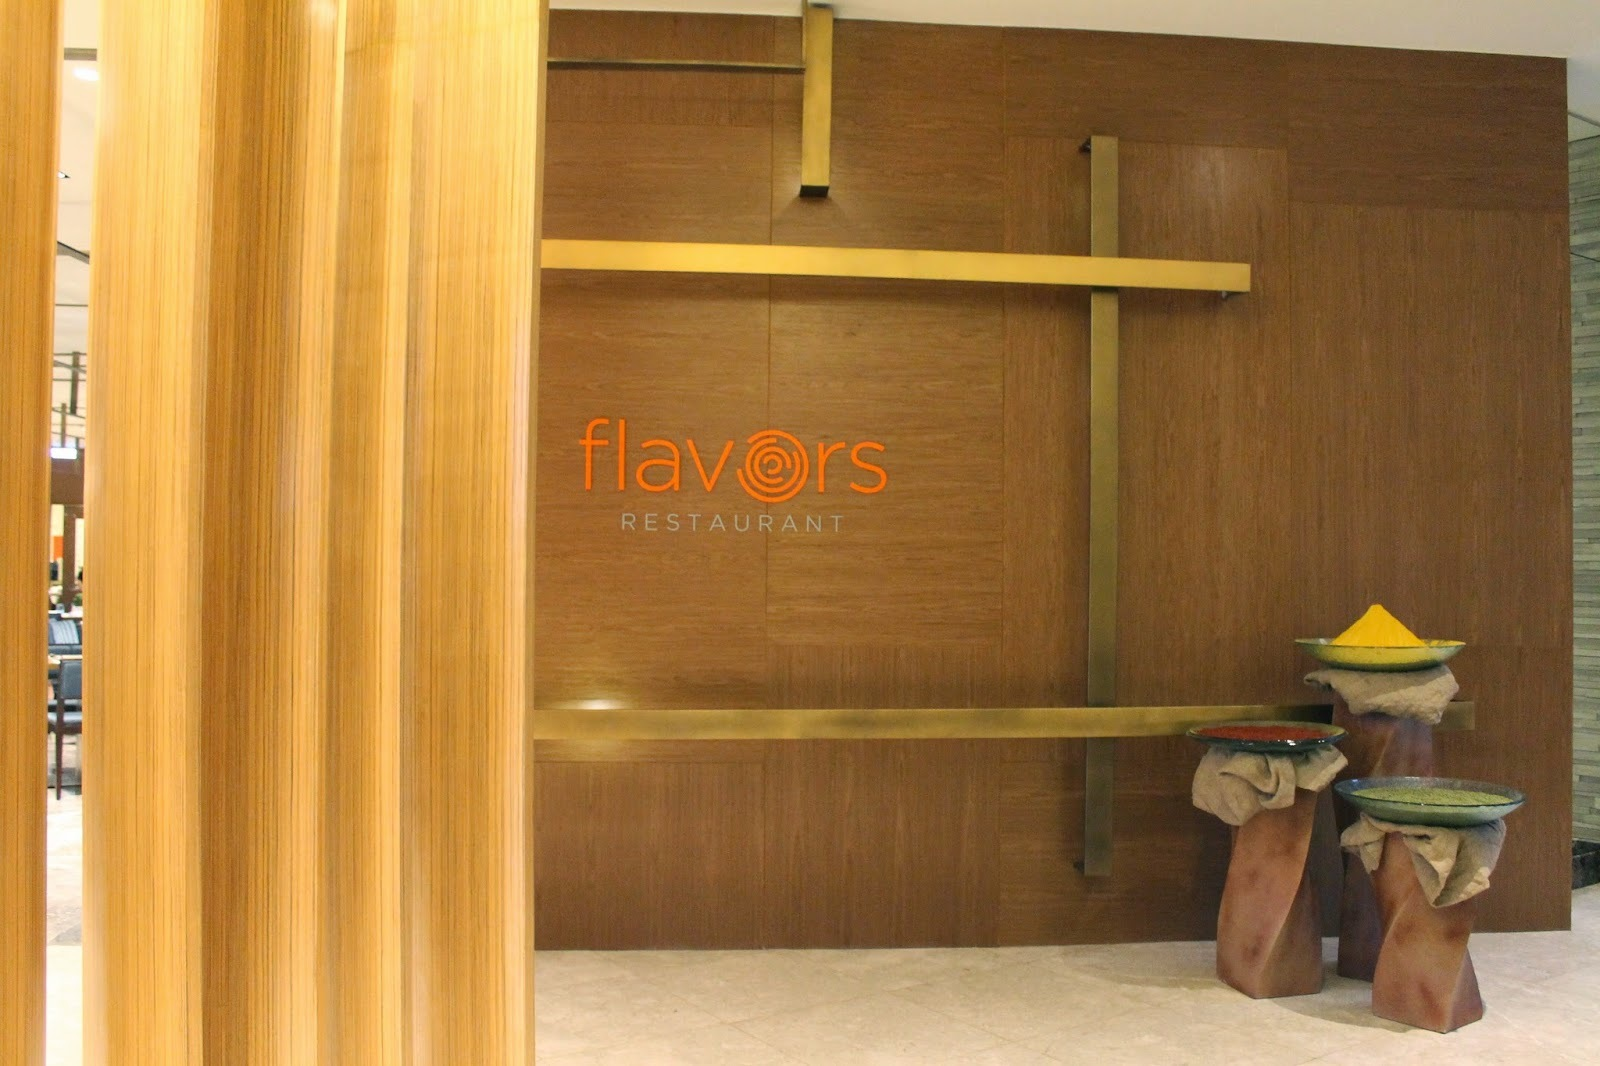 Another Buffet Experience at Flavors Restaurant at P 1